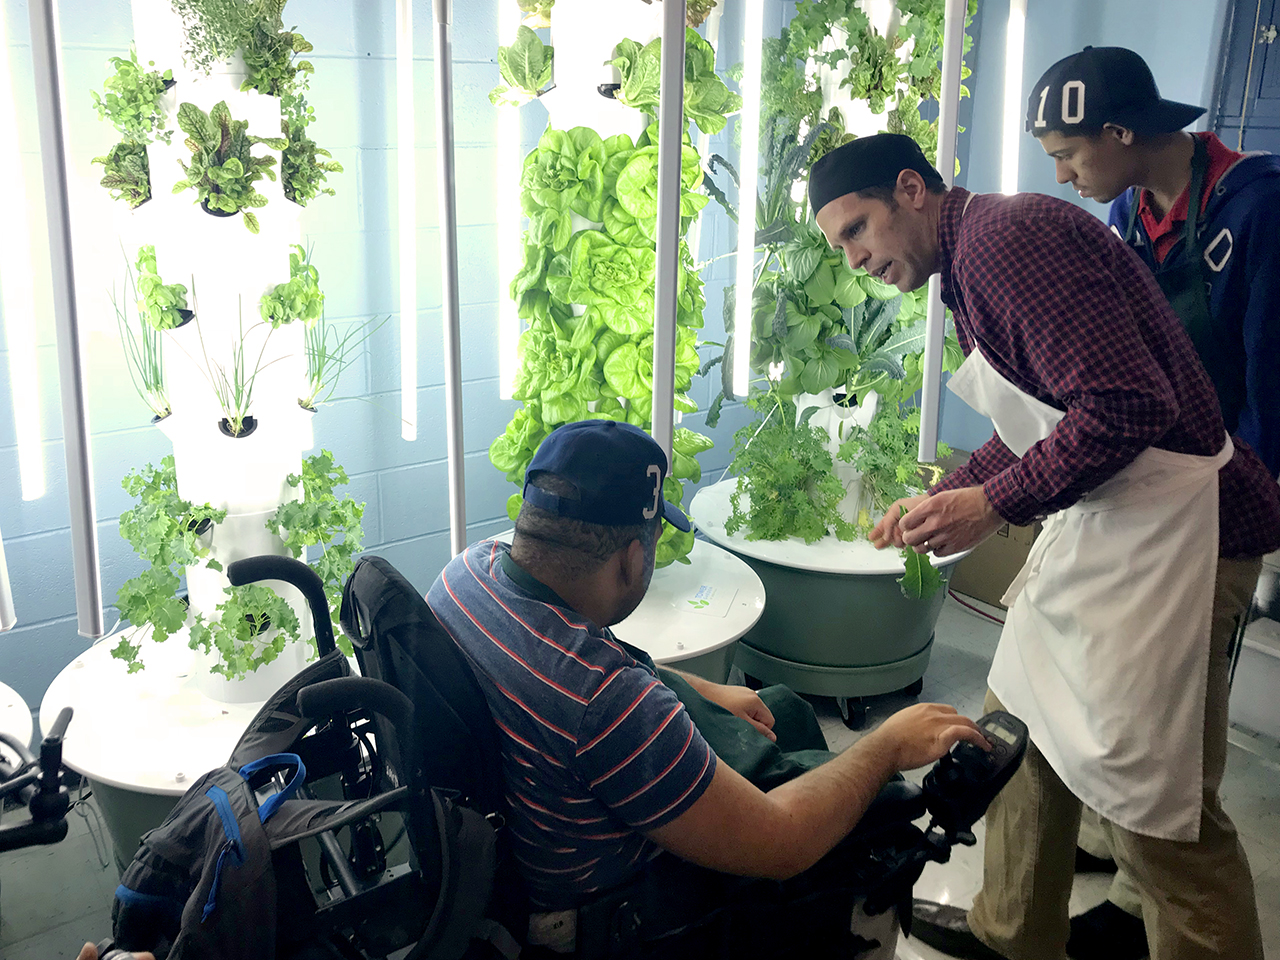 Green Bronx Machine designed, built, and continues to support the first year-round, wheelchair-accessible urban farm and culinary training kitchen in the nation. Modeled after The National Health, Wellness